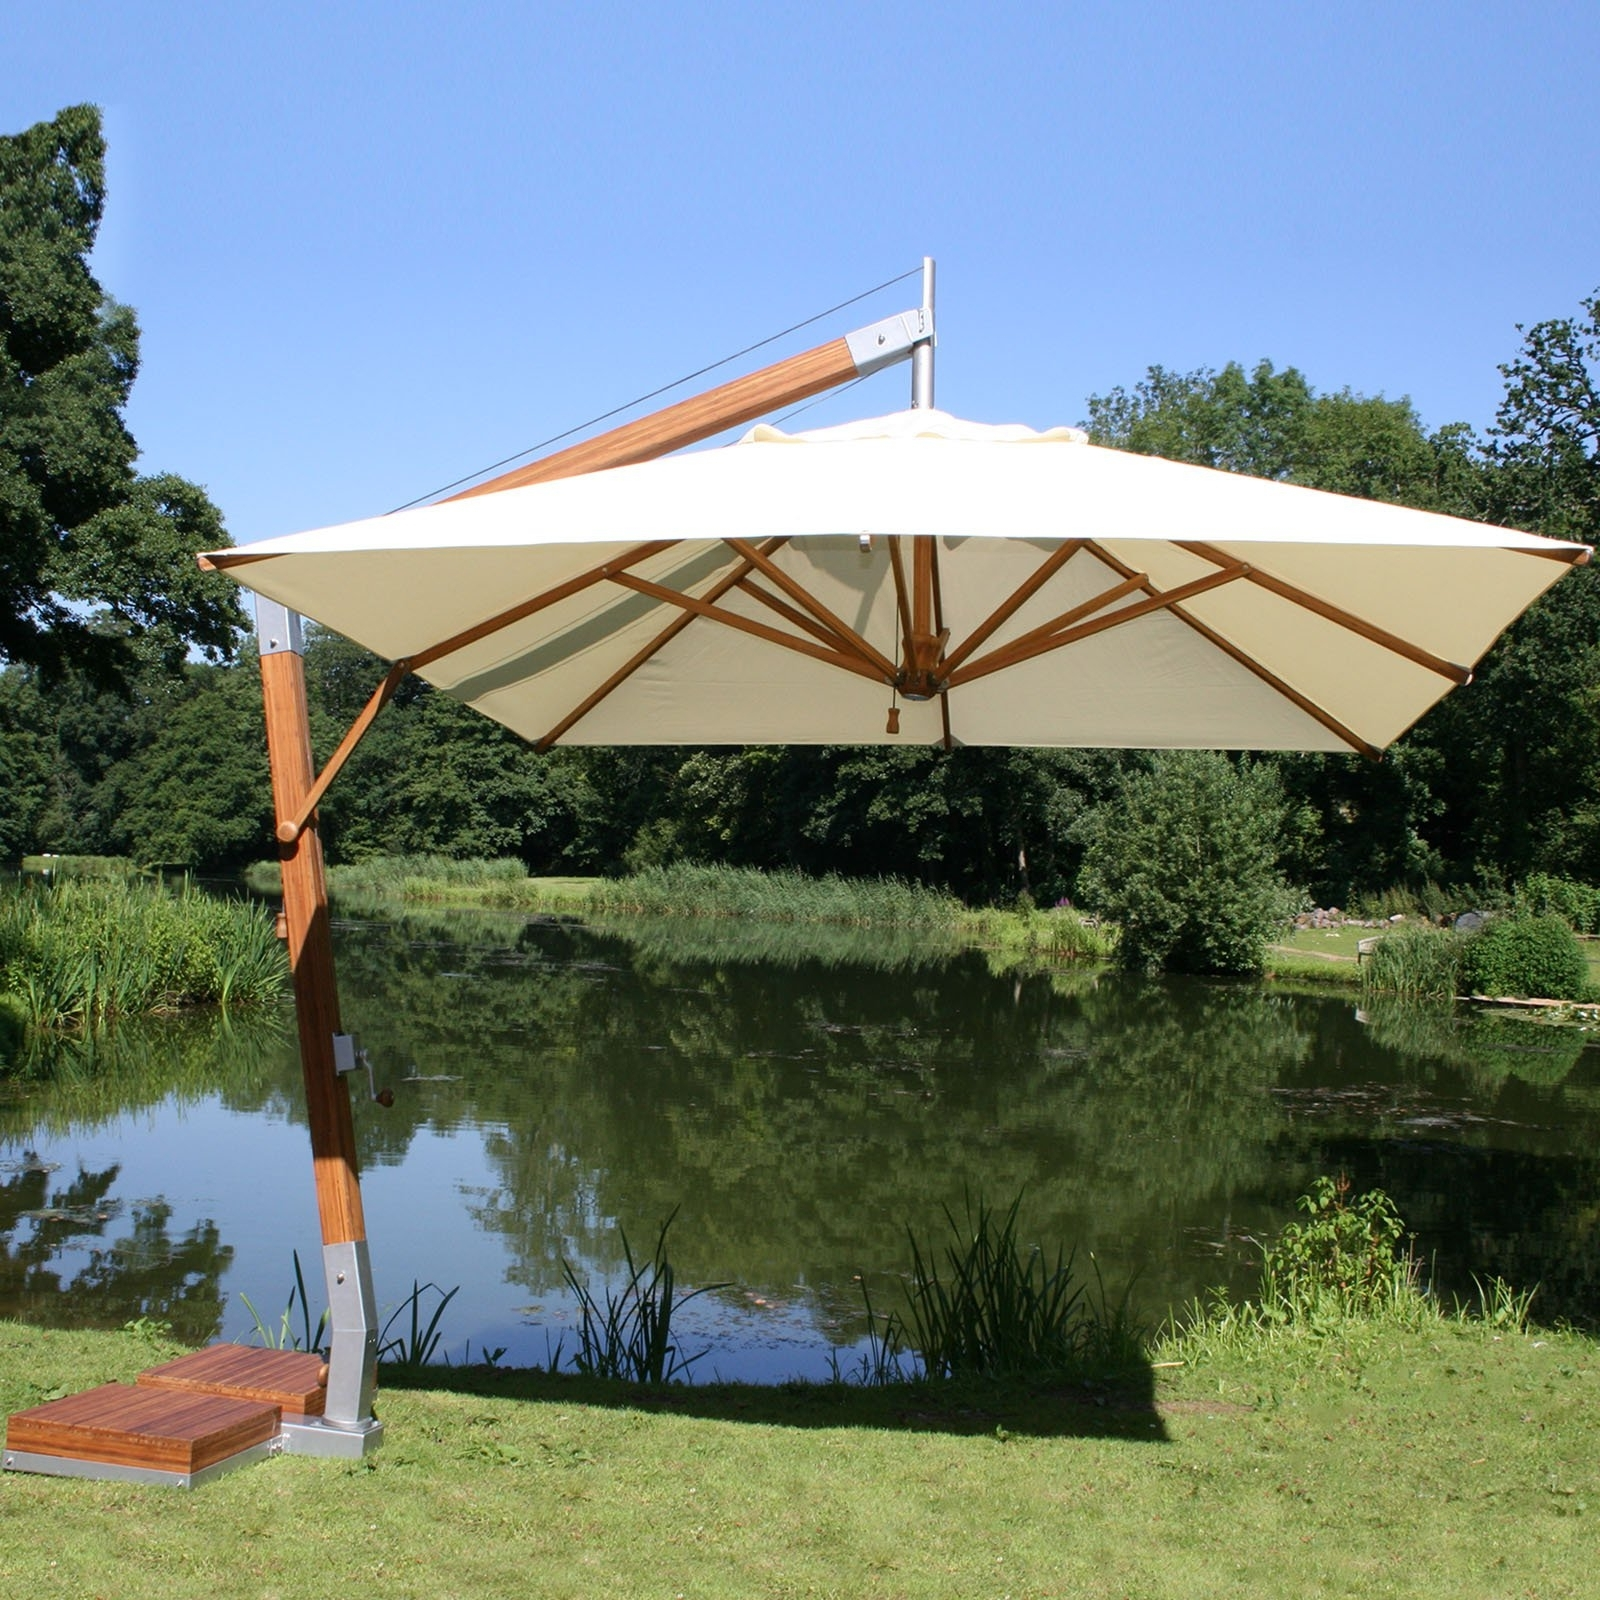 13 Foot Offset Patio Umbrella (View 12 of 20)